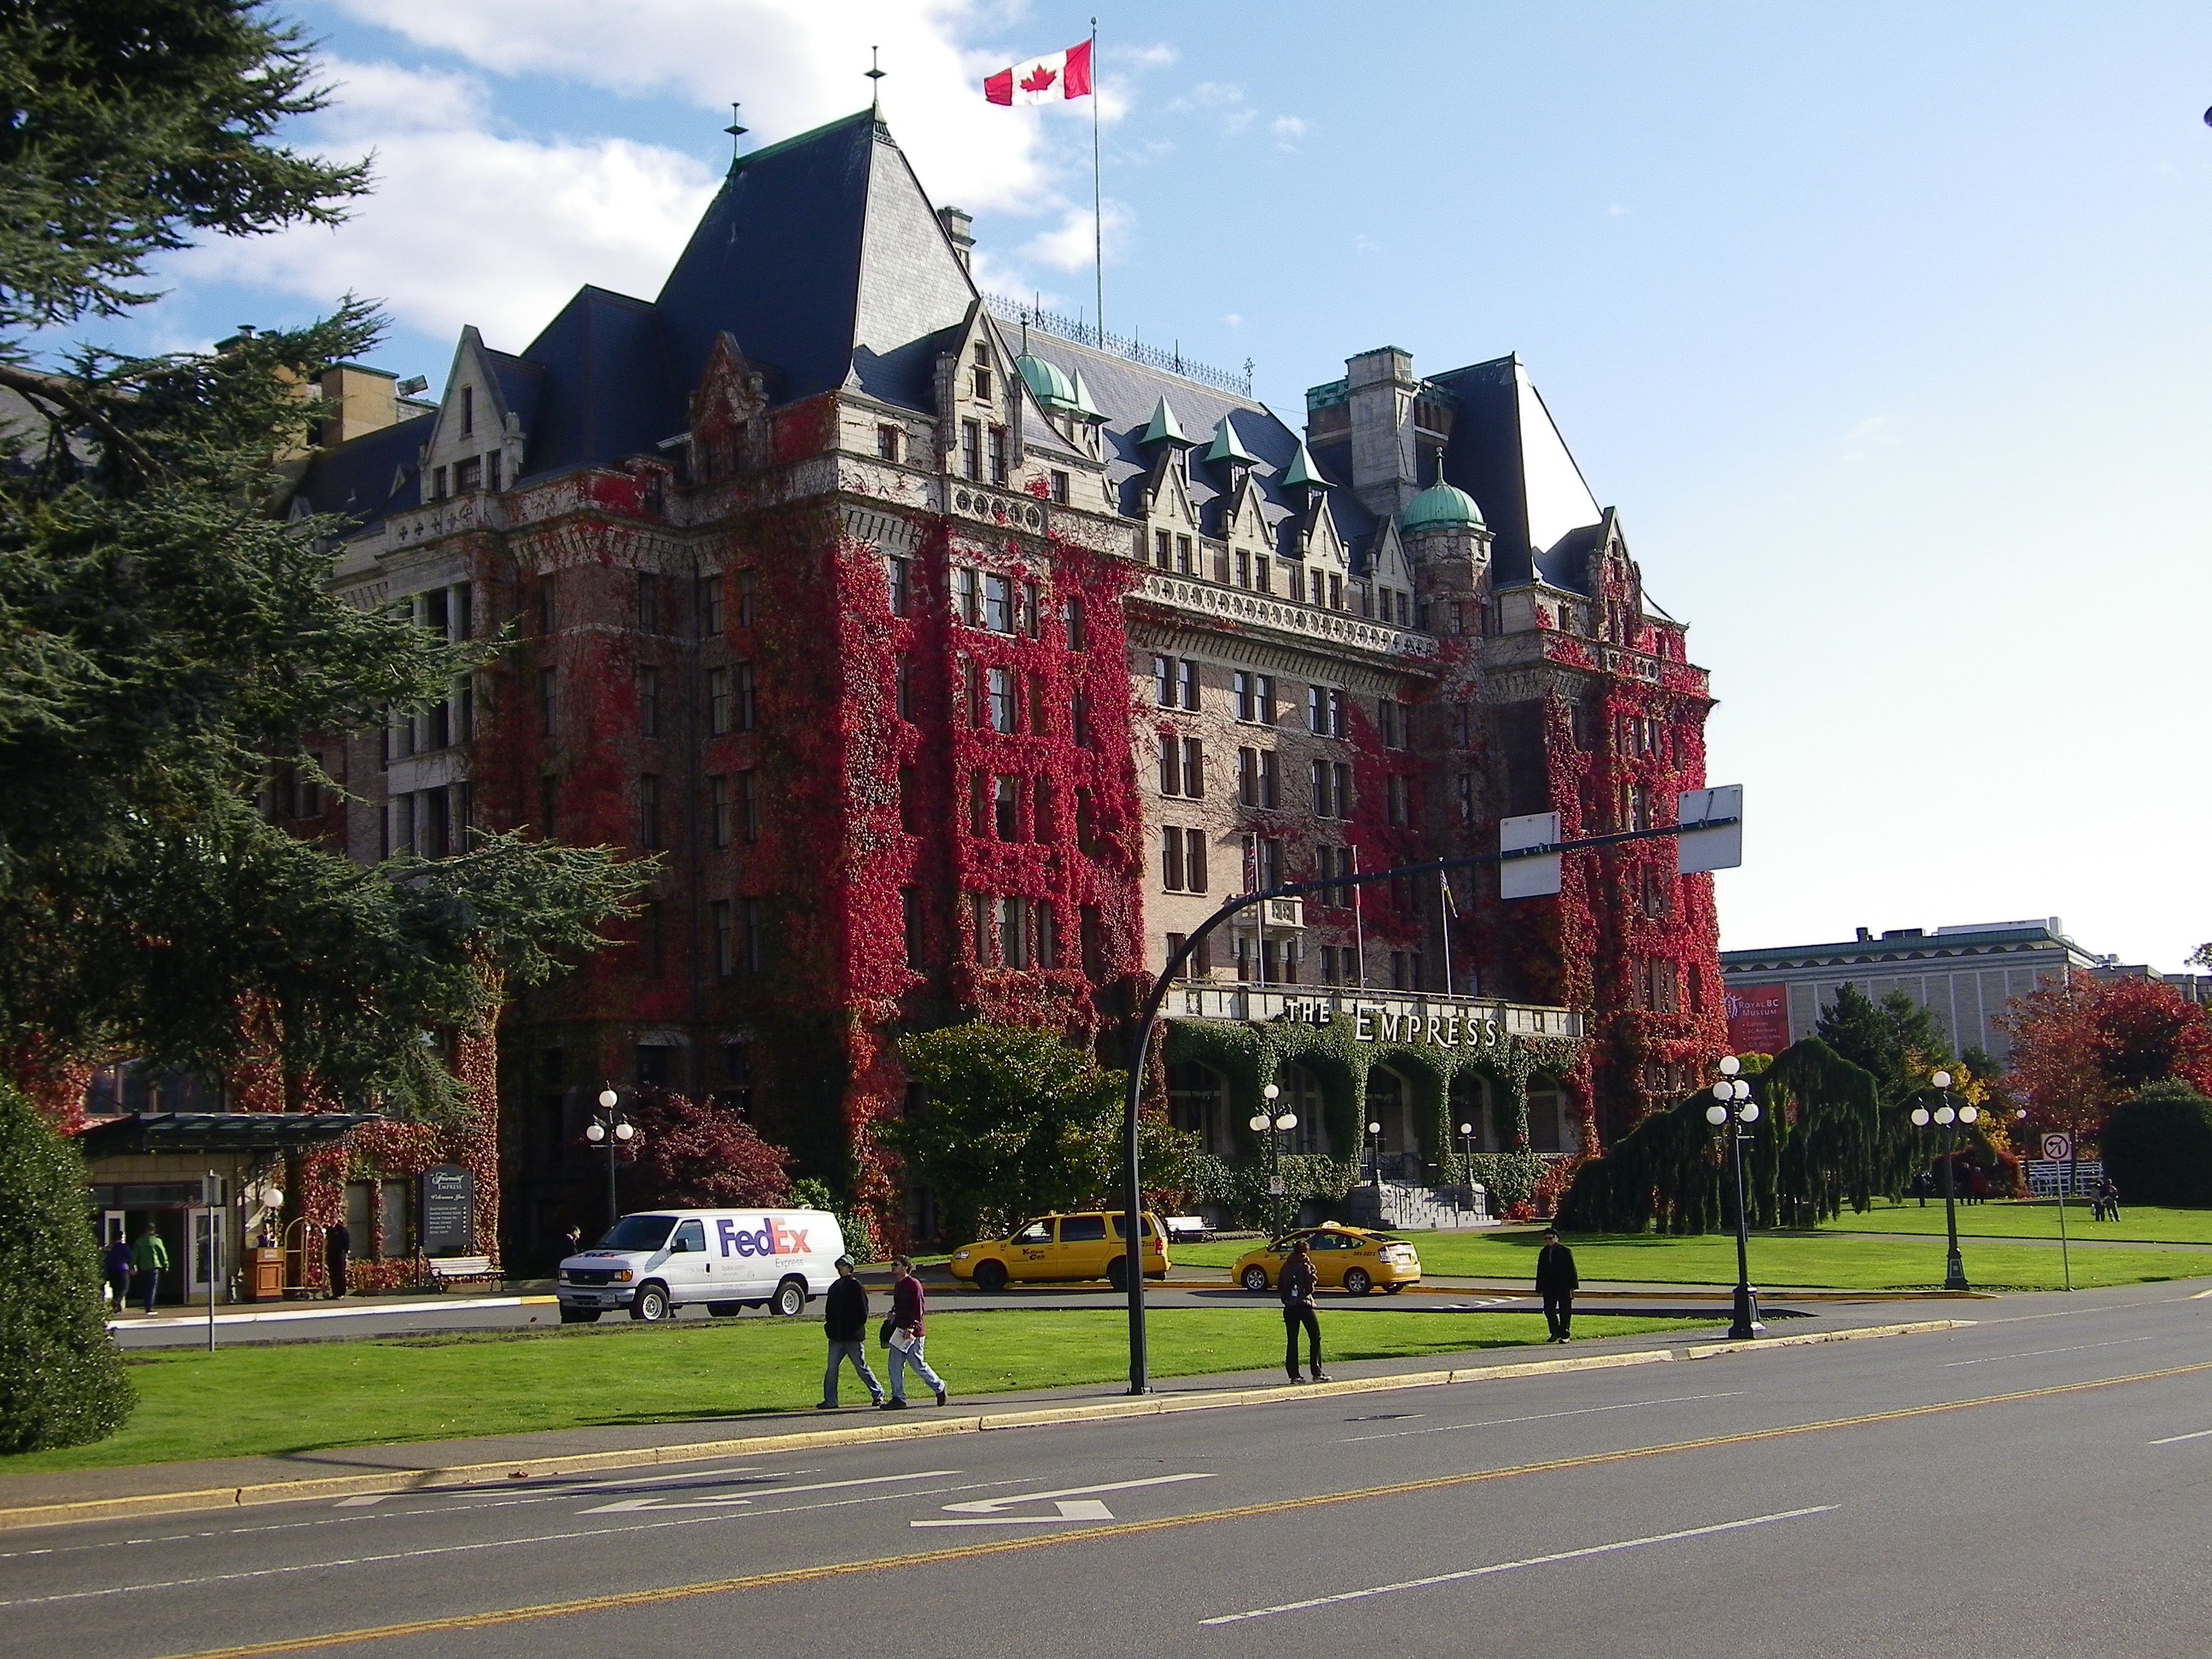 The Empress Hotel in Victoria Canada. Spent my sisters's 50th birthday there. Such a good time!